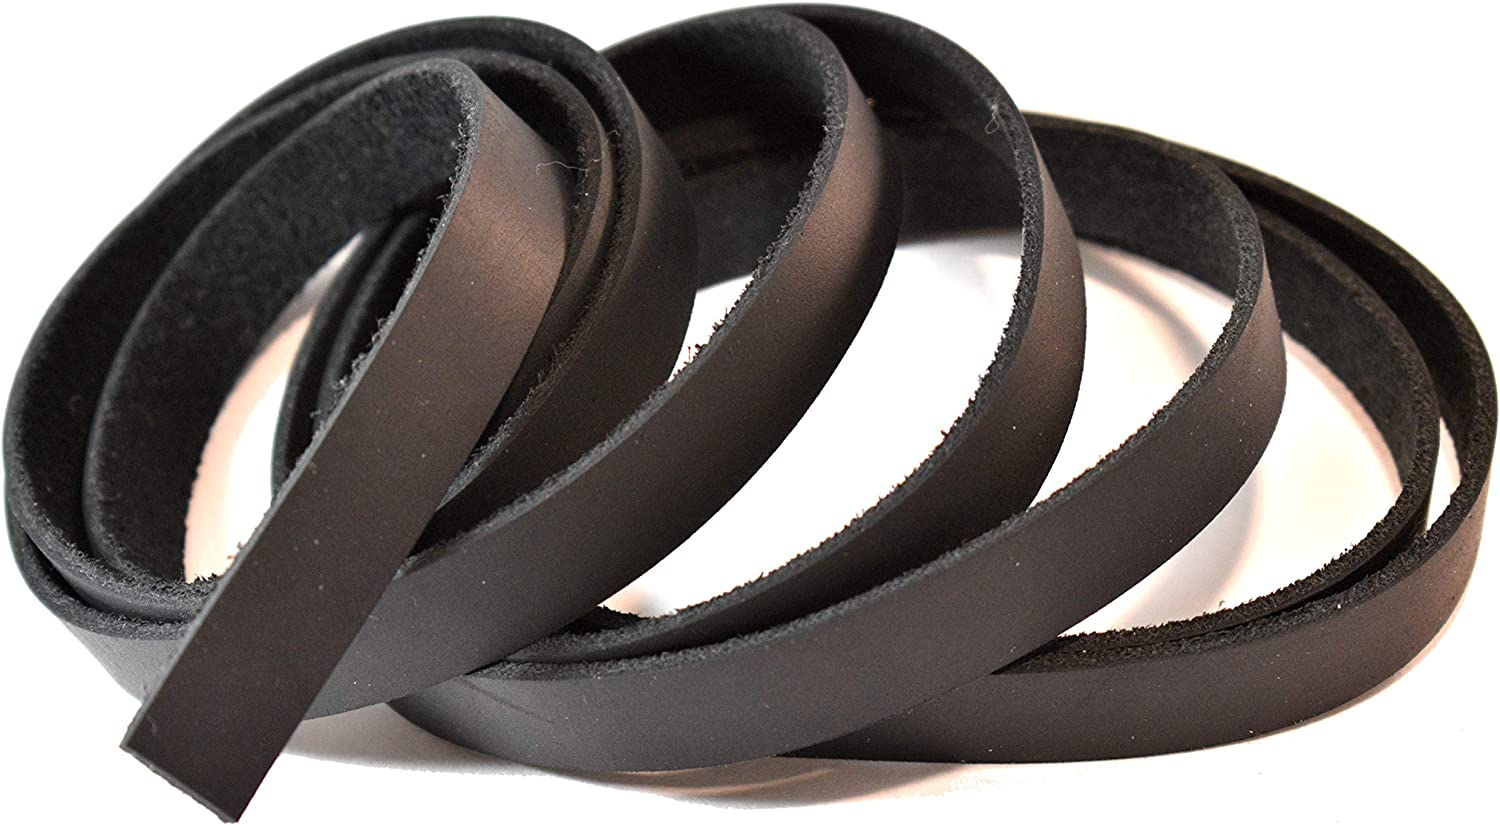 Leatherrush 5-6 Ounce Oil-Tanned Leather Strip Strap Black 5//8 x 84 Inch